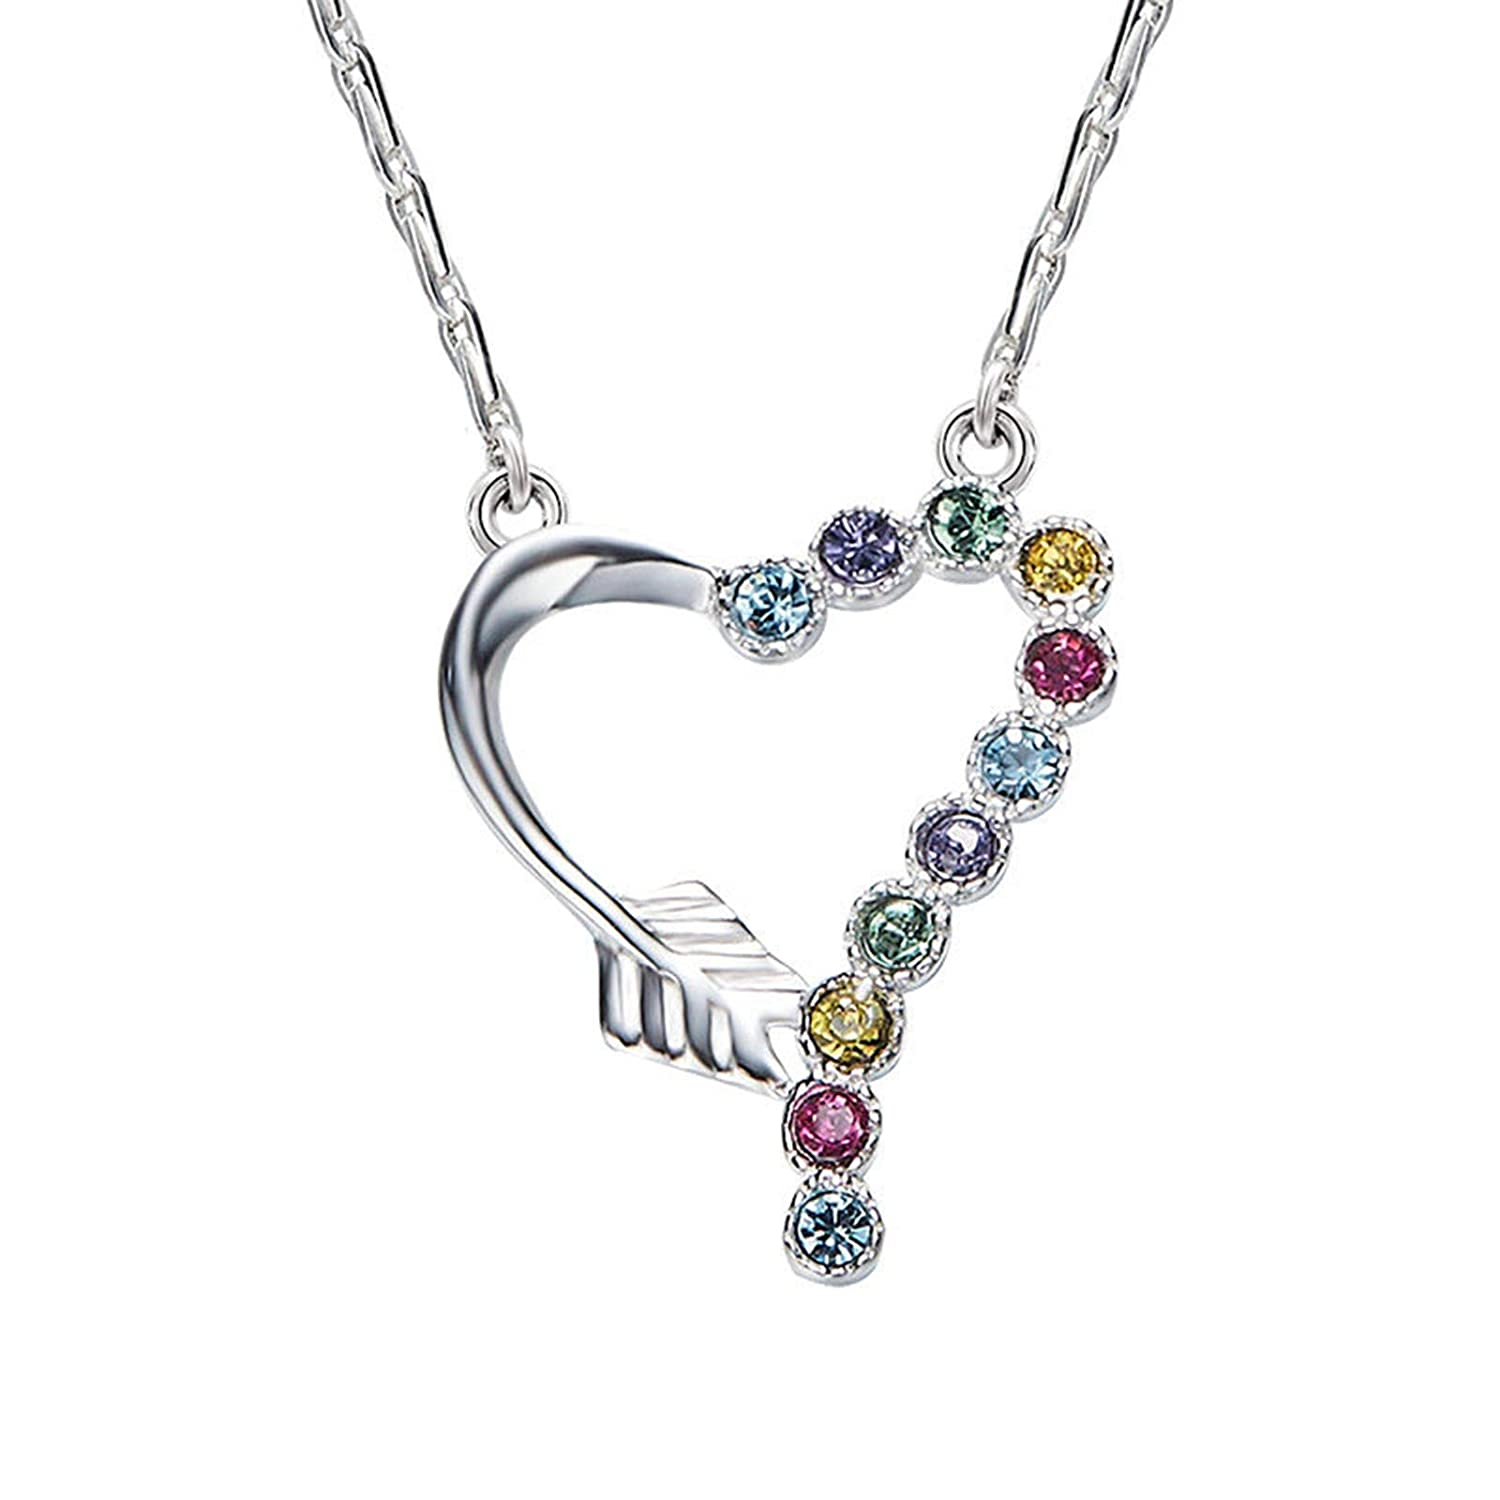 Aooaz Silver Material Necklace Womens Girls Hollow Heart Pendant Necklaces Silver Anniversary 40+5CM